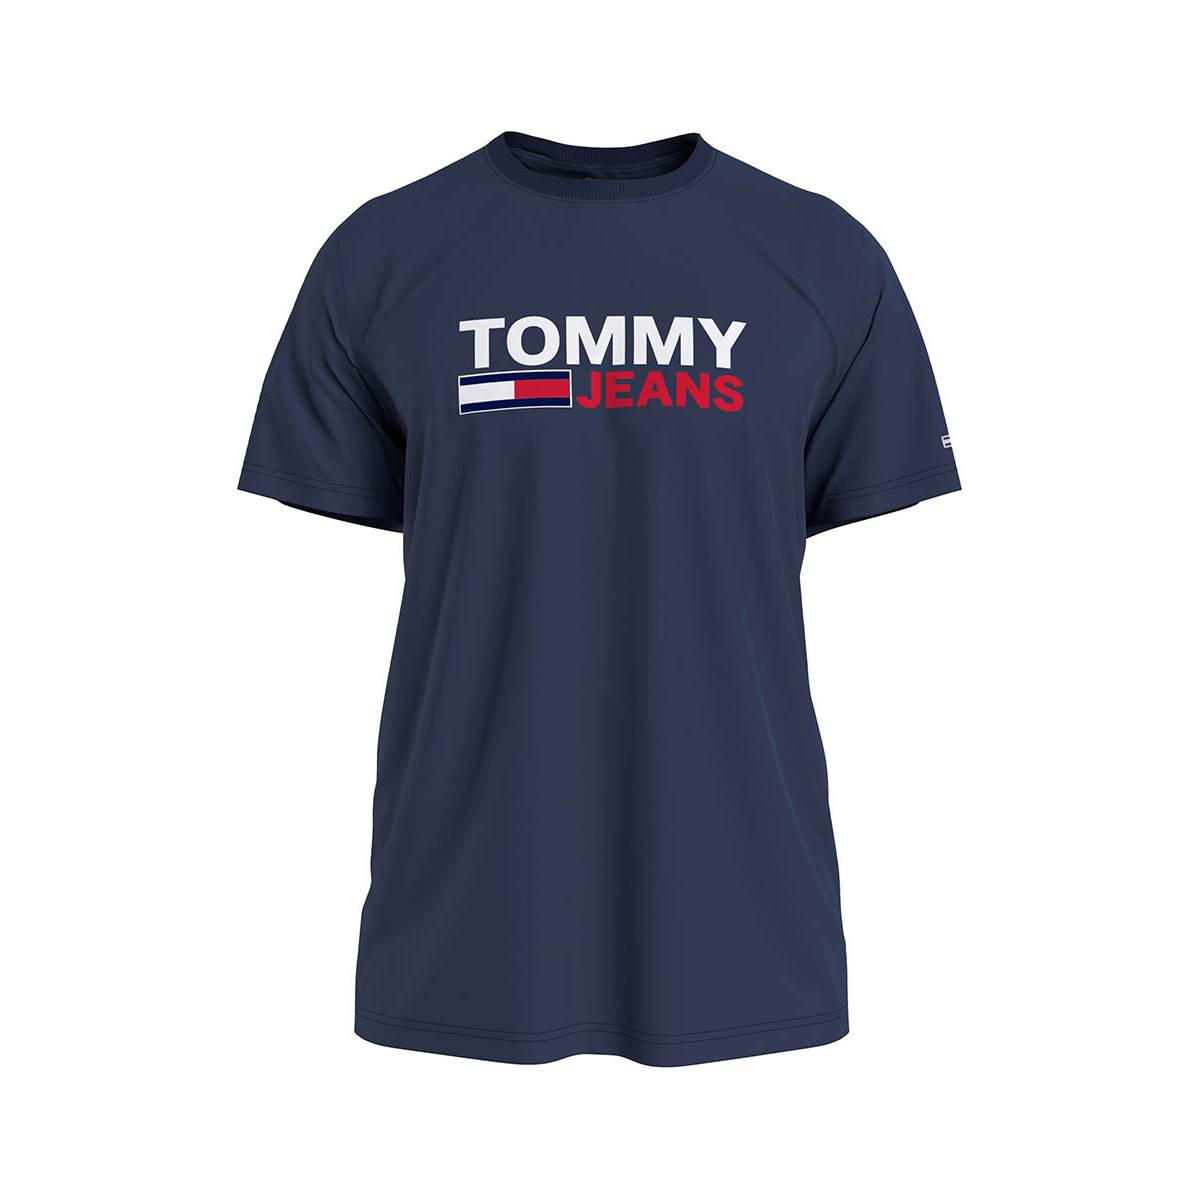 Tommy Jeans DM0DM10214 CORP LOGO TEE Blauw